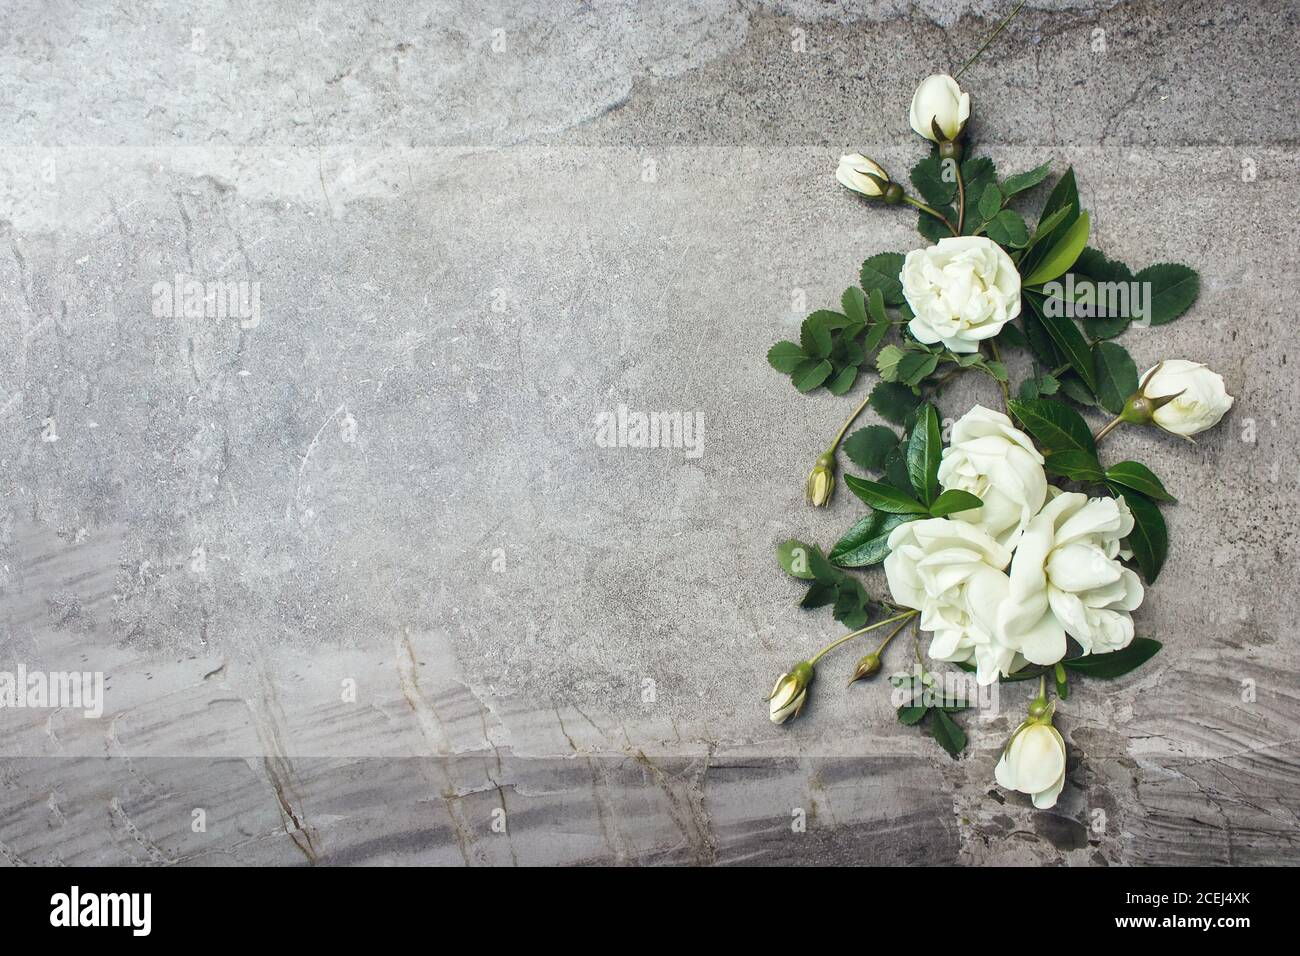 White Rose On Grey Background High Resolution Stock Photography And Images Alamy